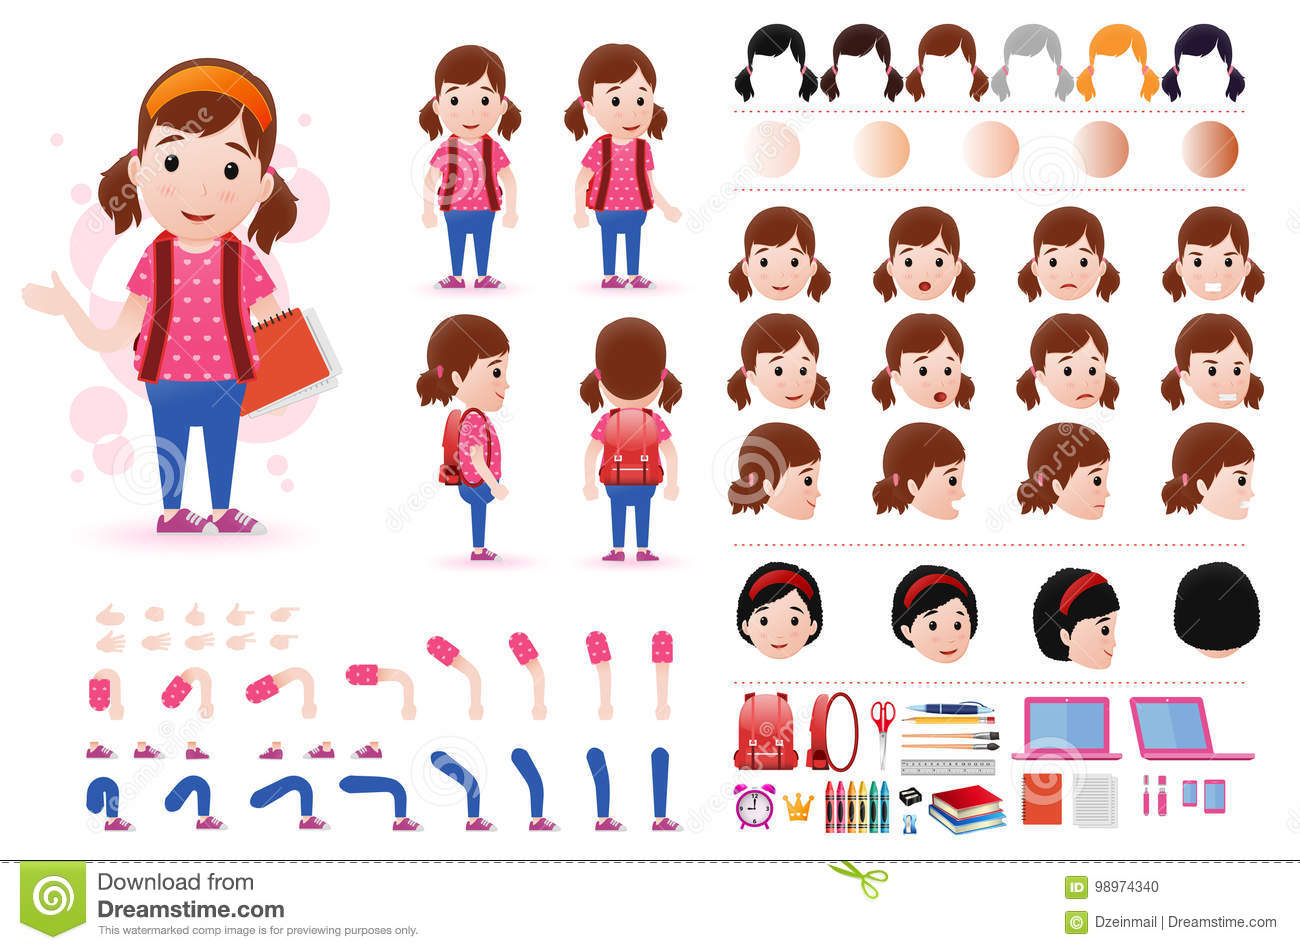 little girl student character creation kit template with different facial expressions